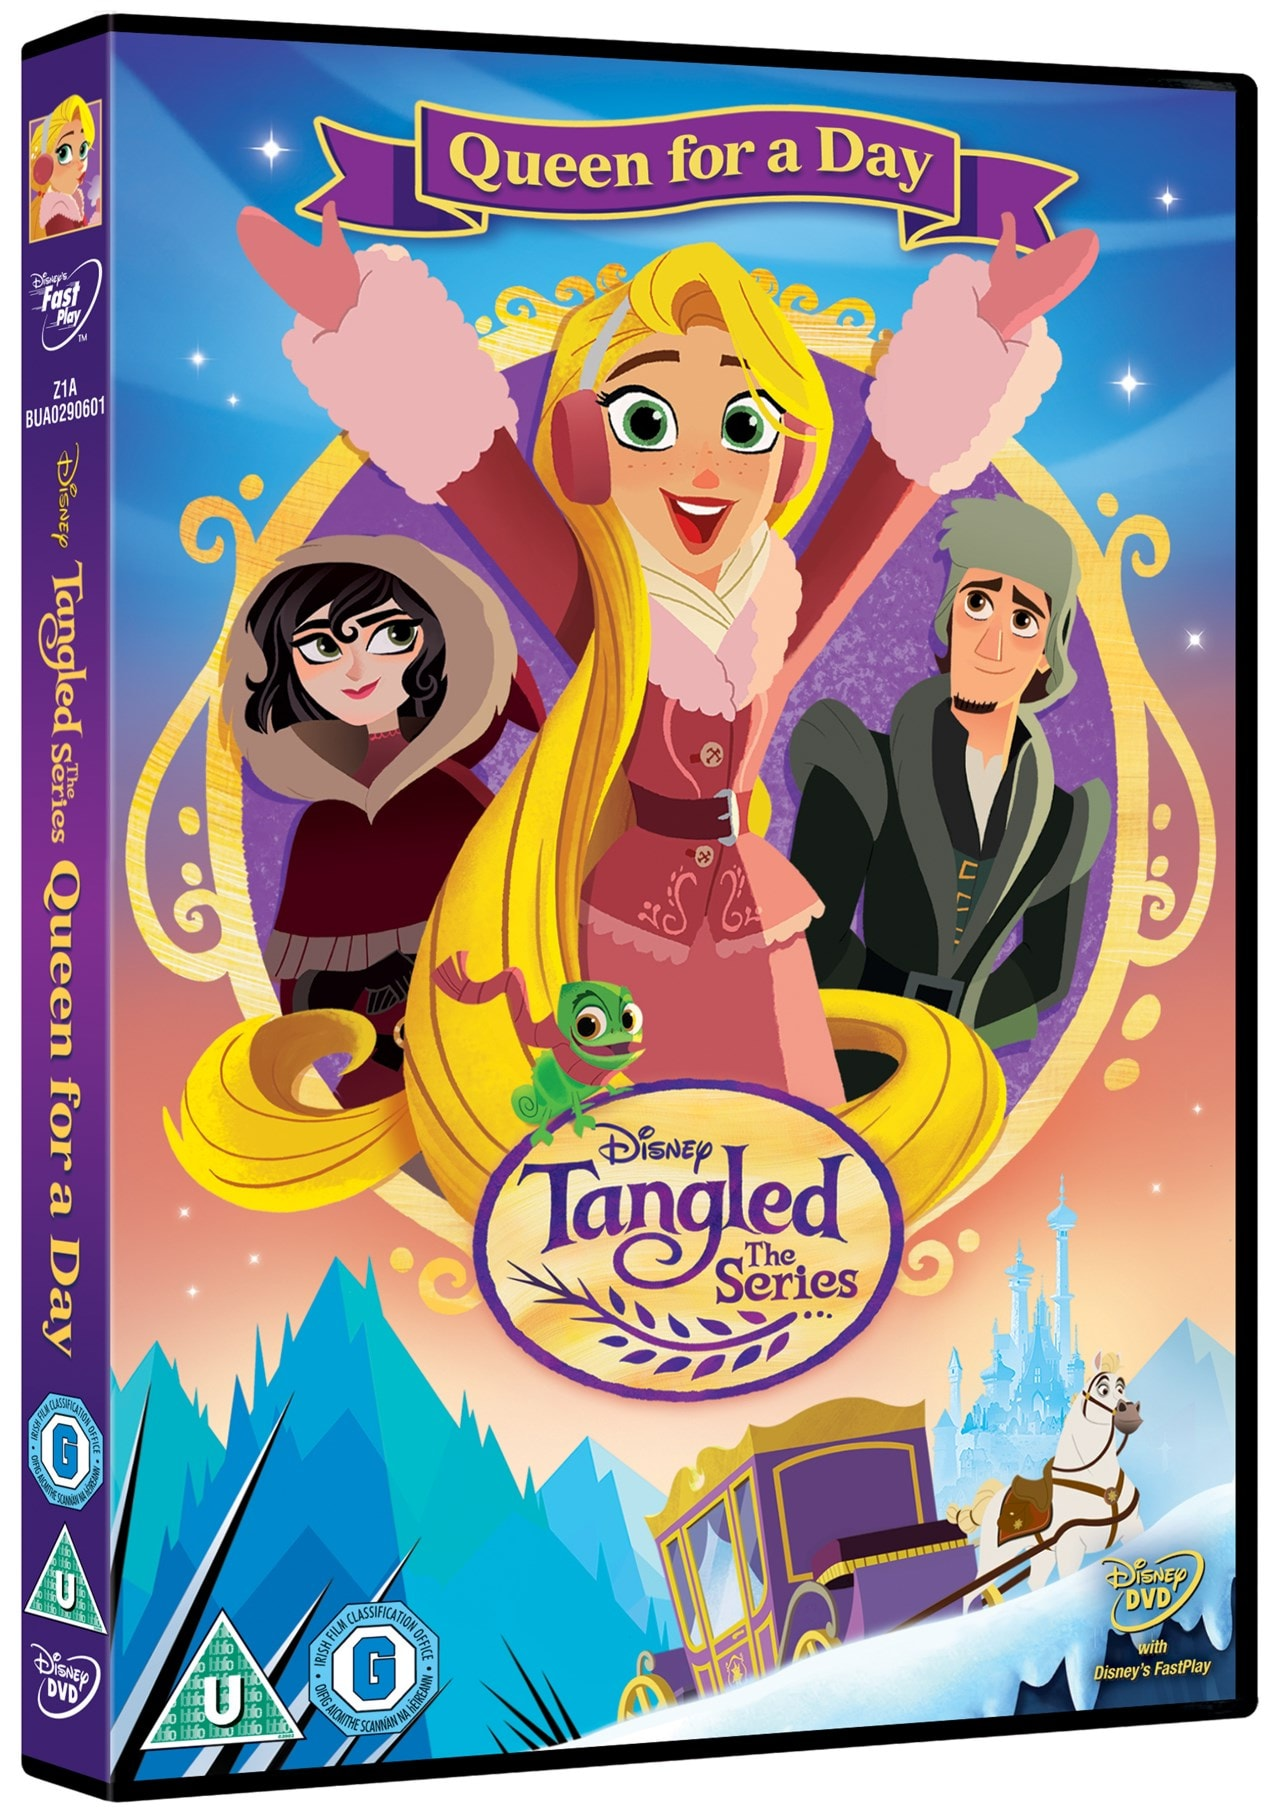 Tangled: The Series - Queen for a Day - 2